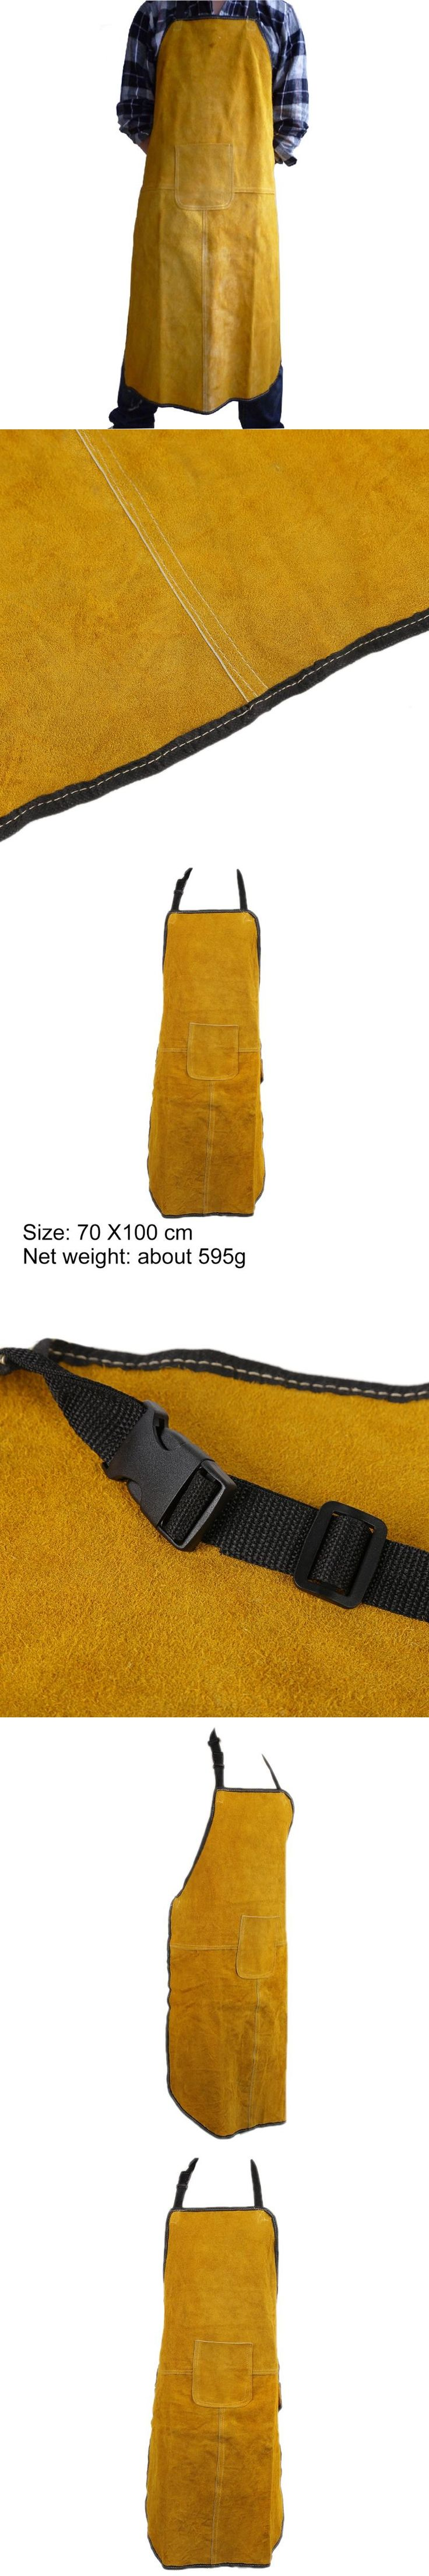 70x100cm Special Protection Workwear Fire-Retardant Argon-arc Cow Leather Welding Apron Work Protective Clothing Dustproof Apron